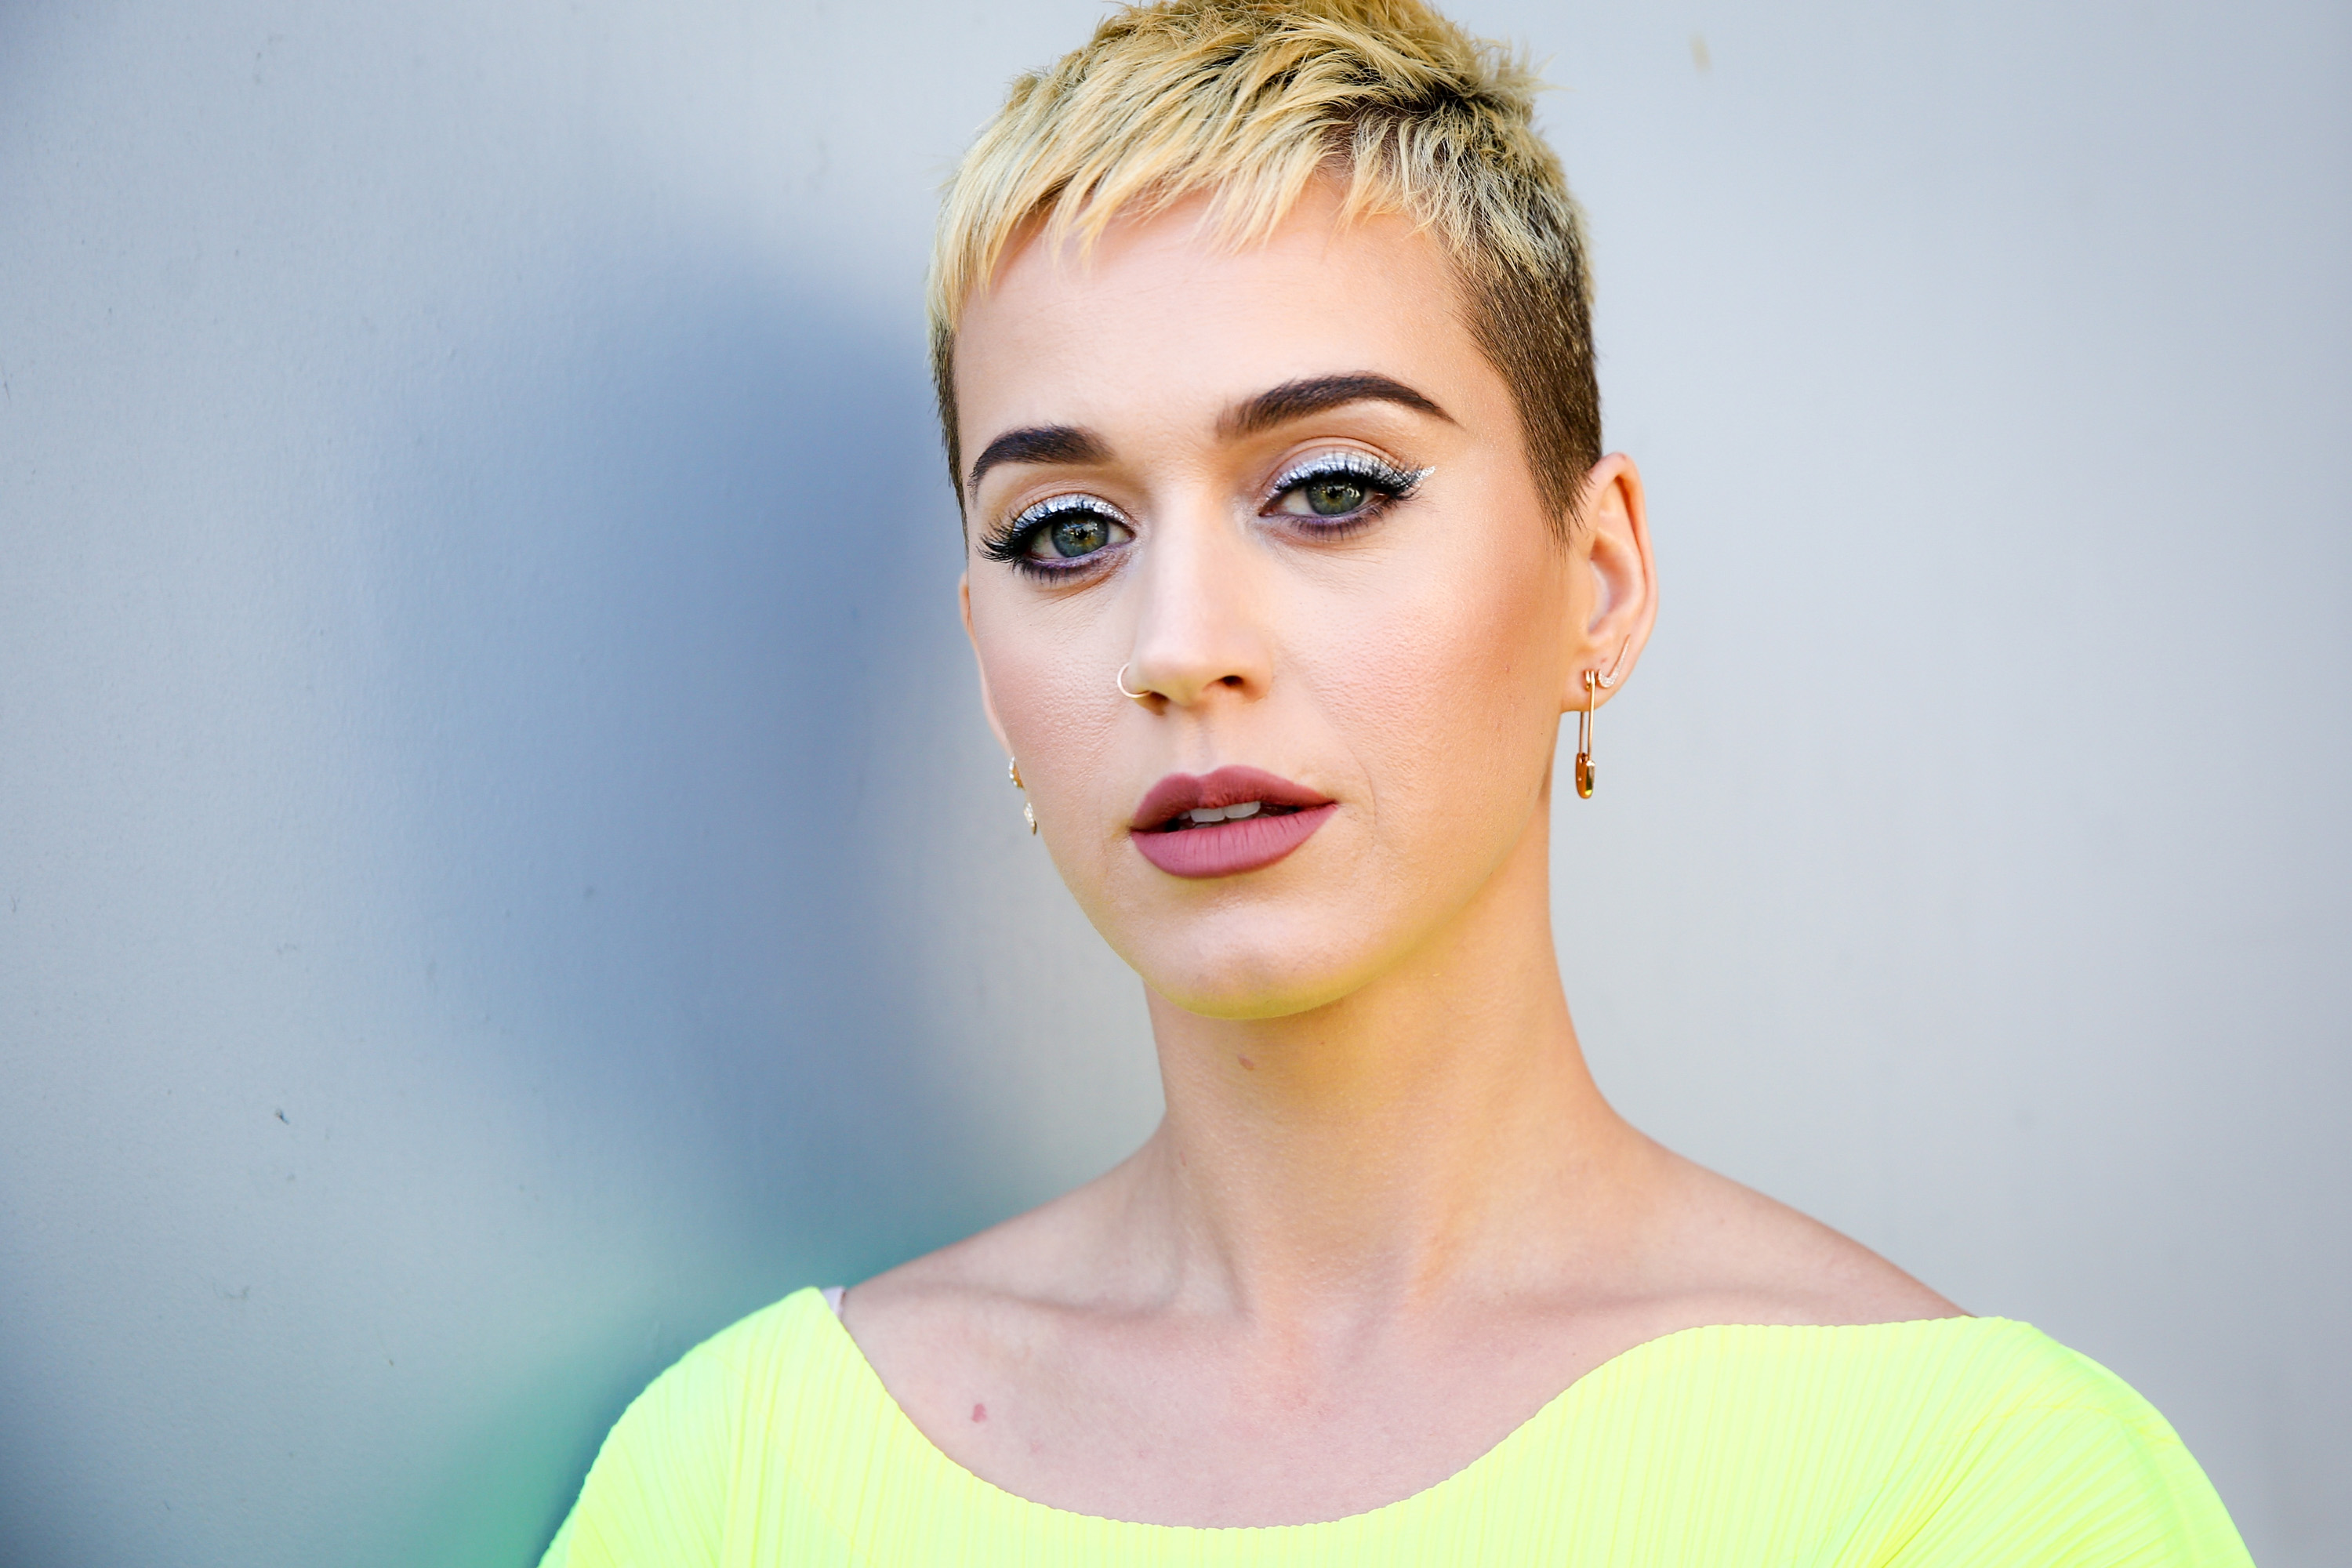 2018 Katy Perry Hd Celebrities 4k Wallpapers Images